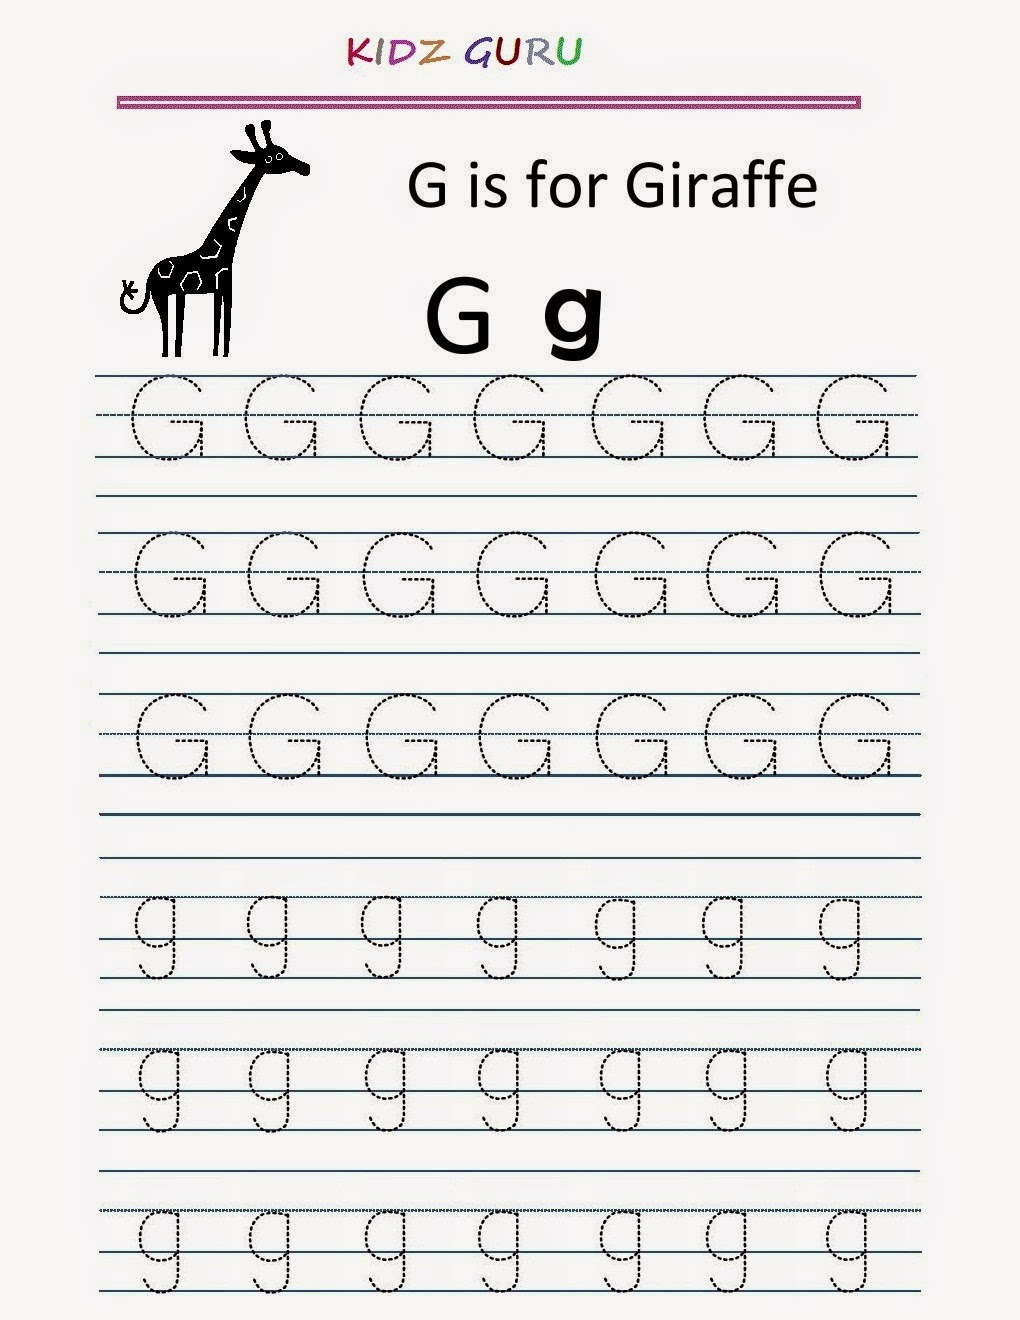 15 Exciting Letter G Worksheets For Kids | Kittybabylove intended for Letter G Tracing Printable